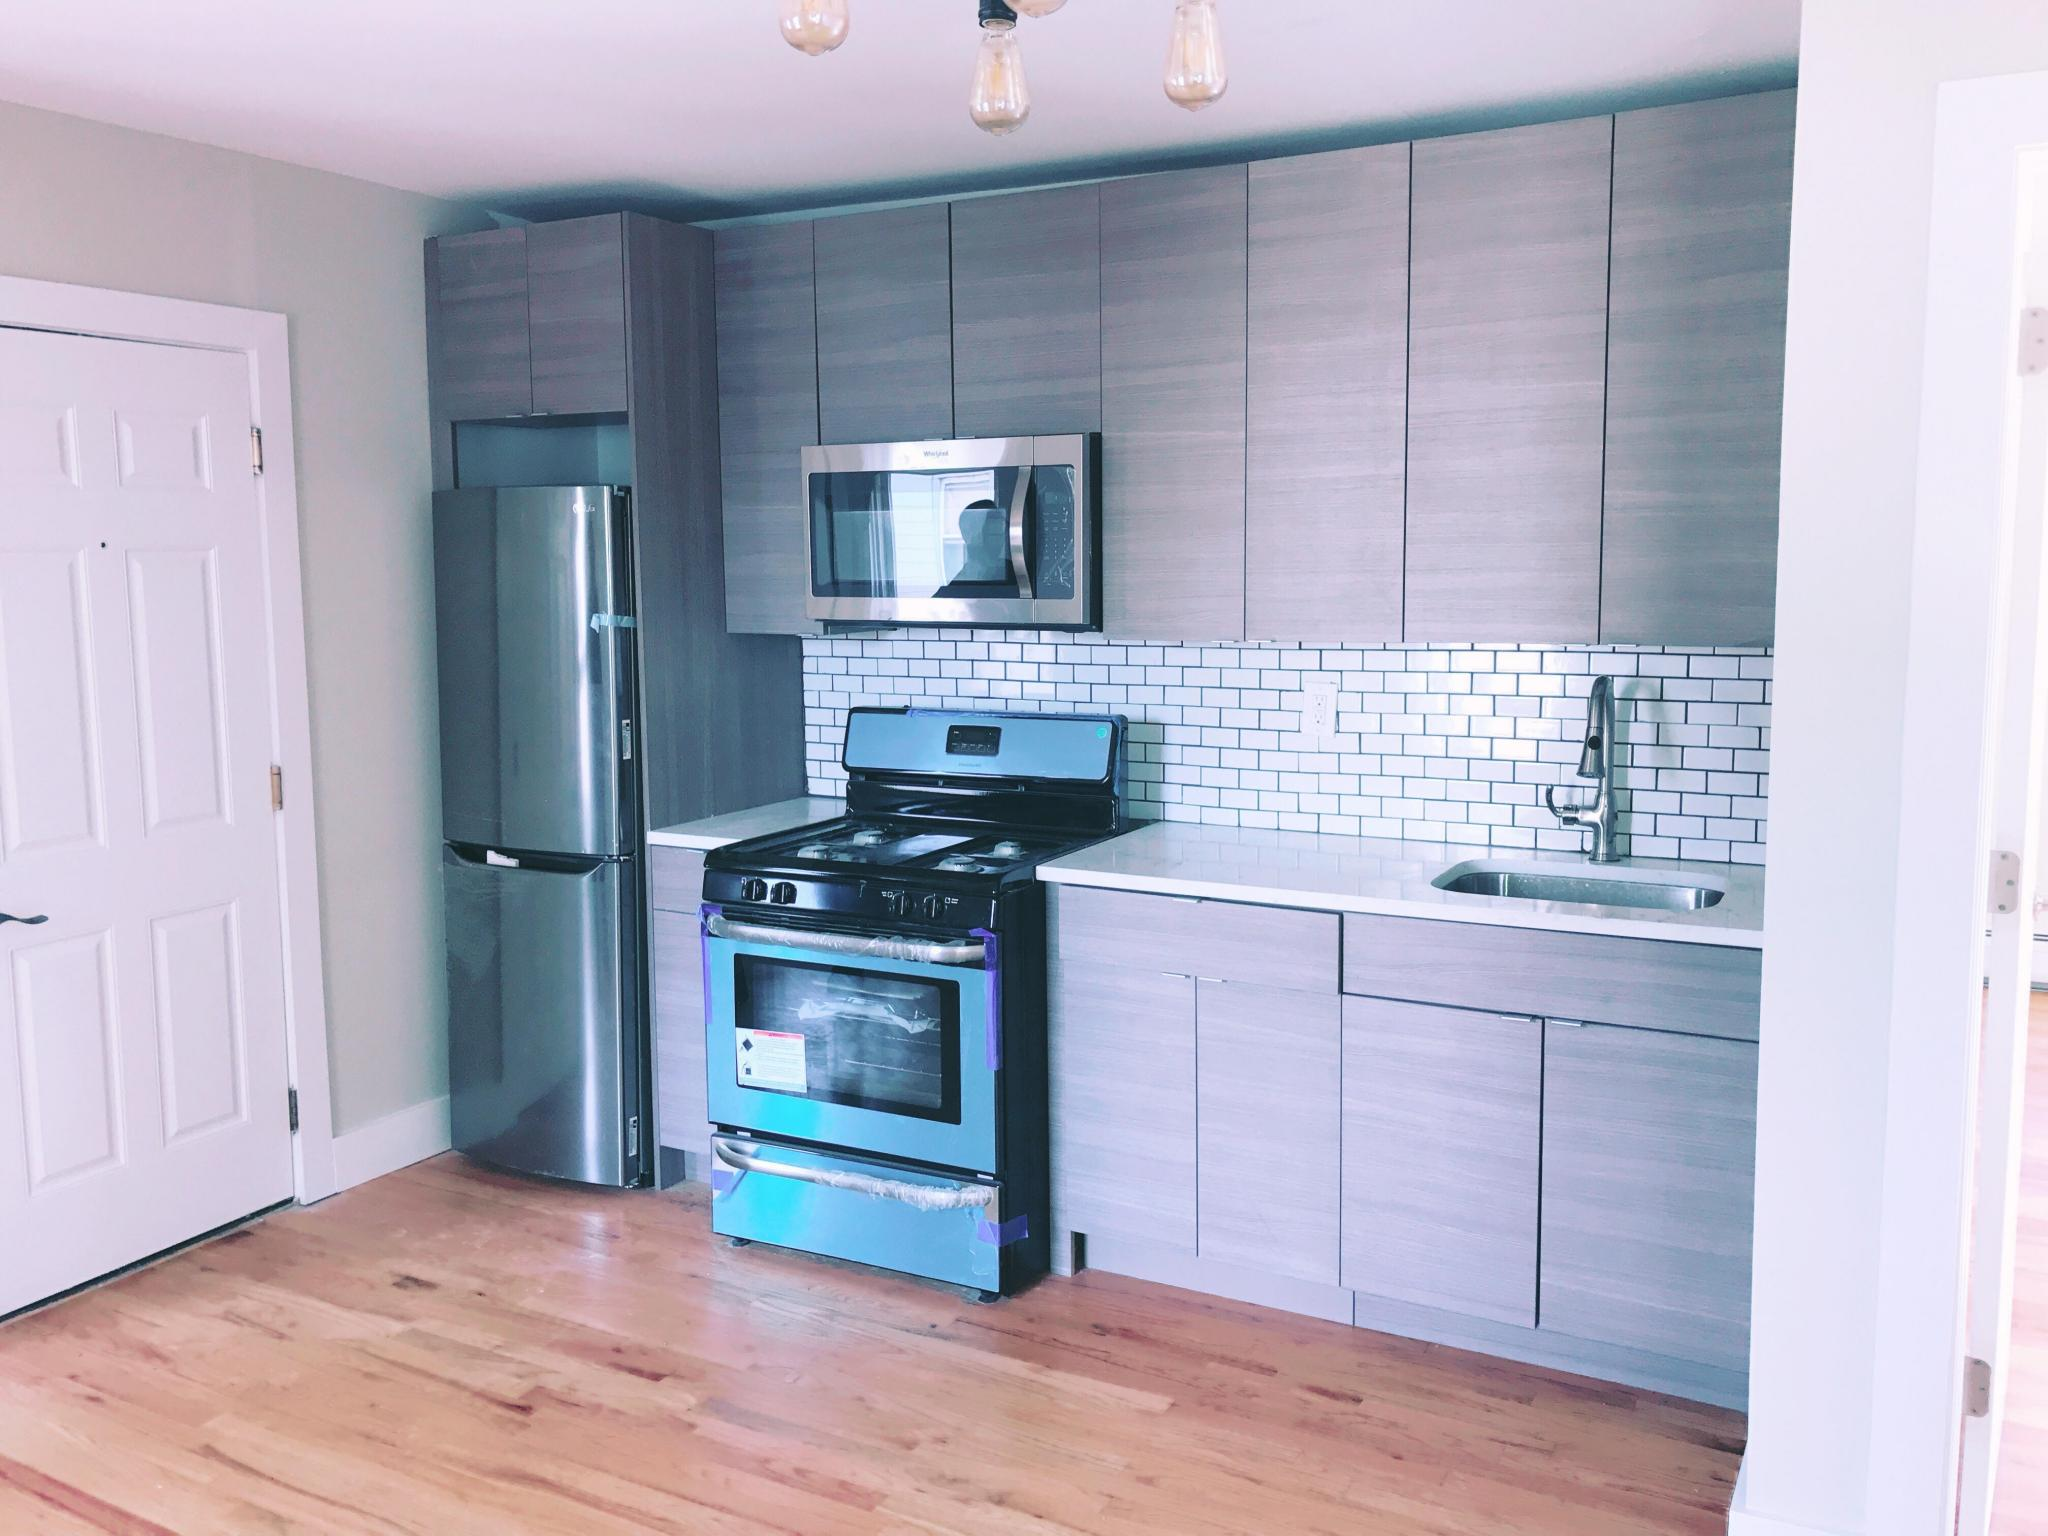 47 Beacon Ave For Rent - Jersey City, NJ | Trulia